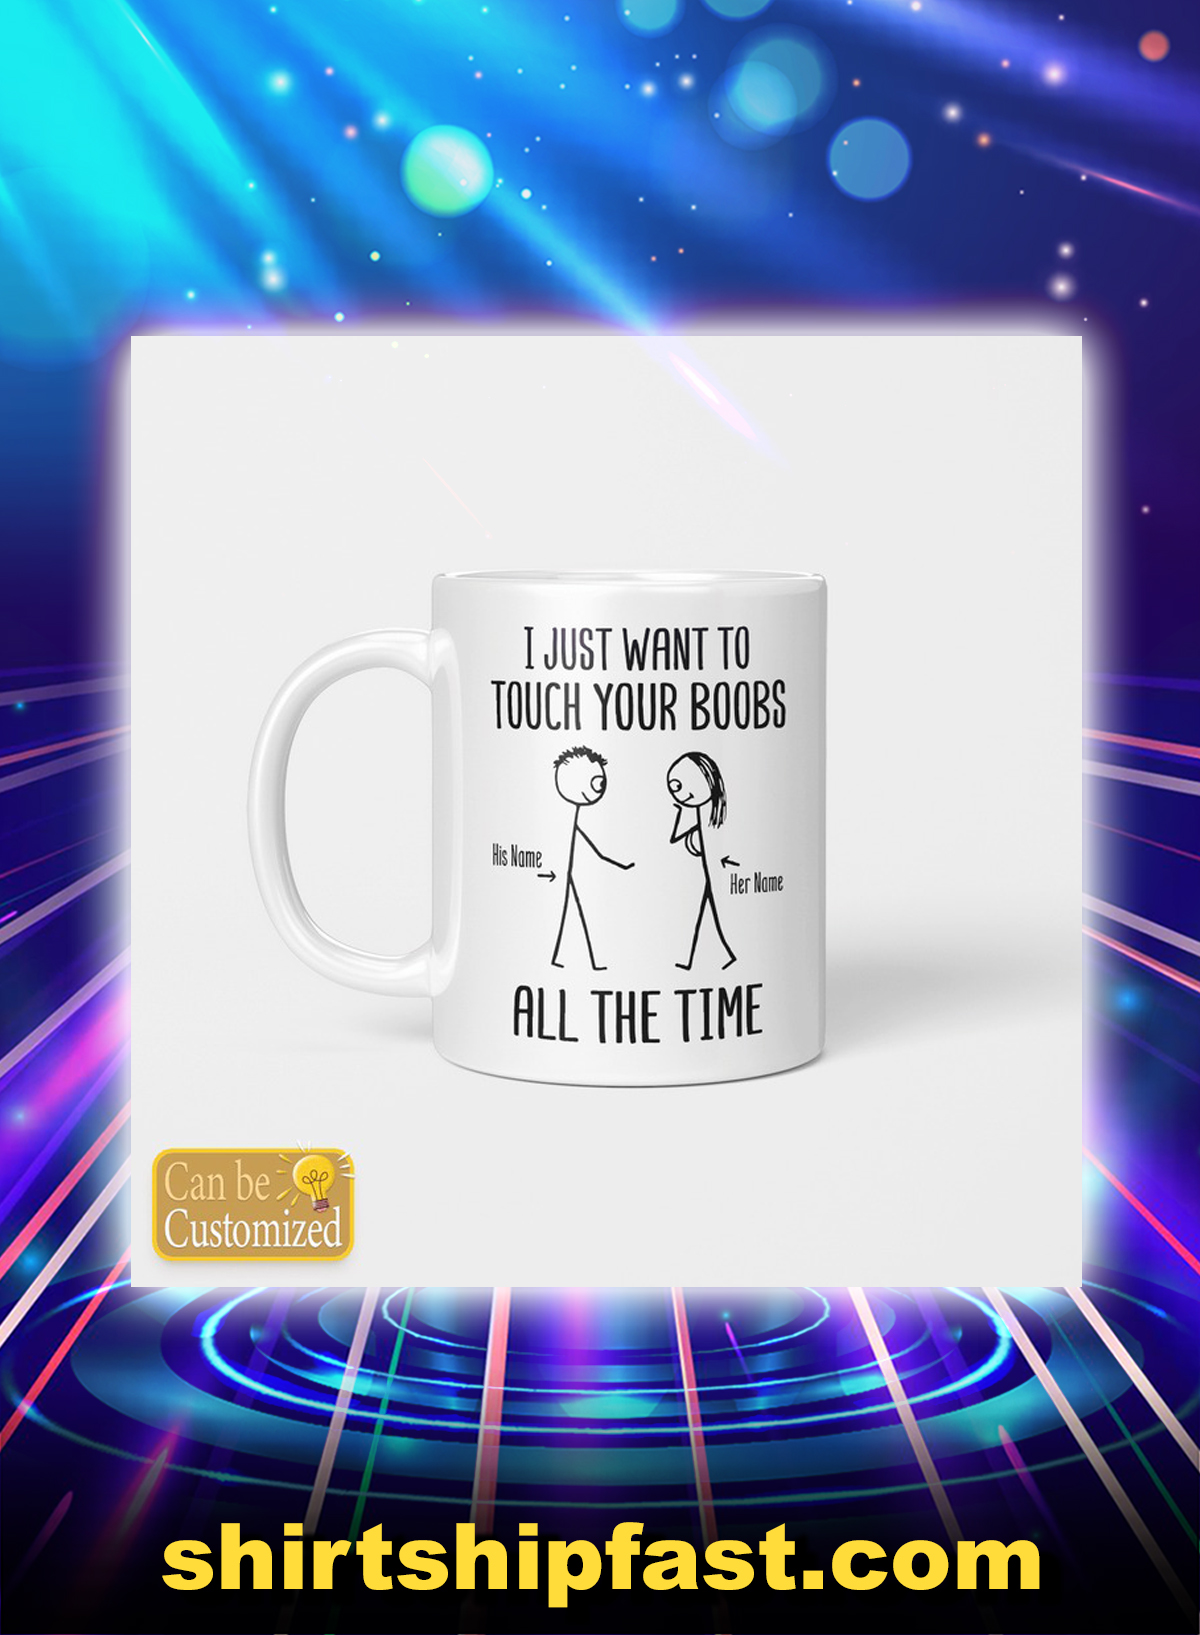 I just want to touch your boobs all the time personalized custom name mug - Picture 1